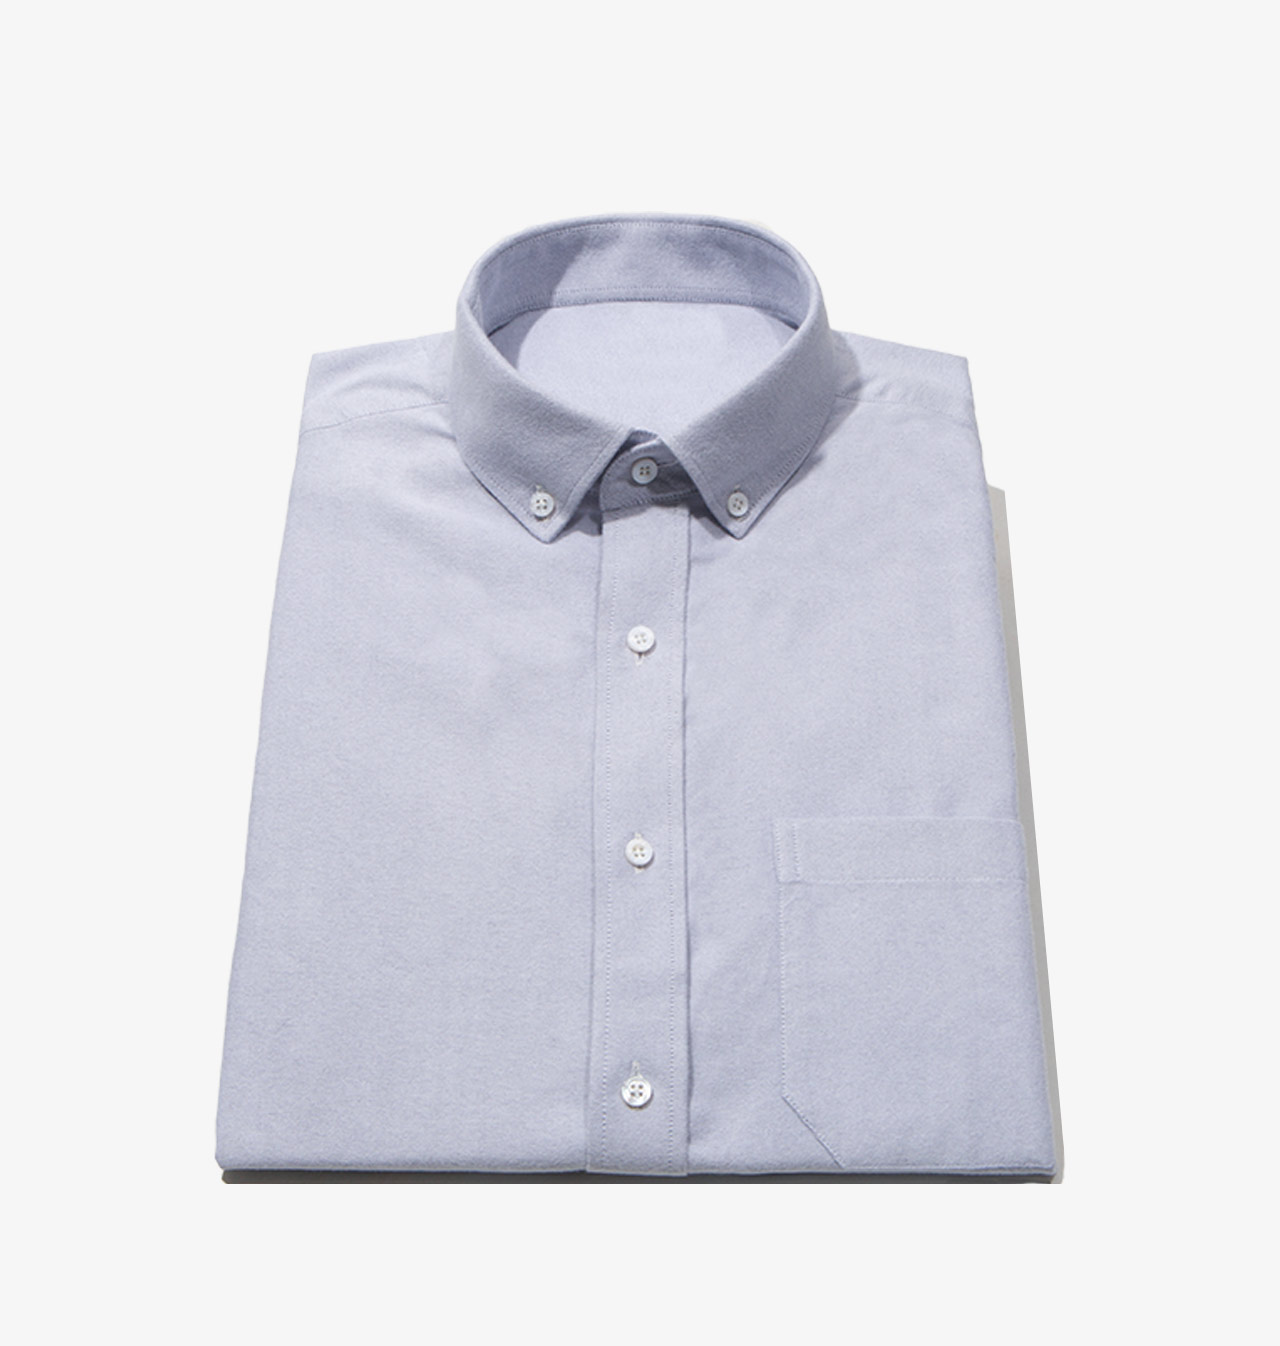 Shirts casual grey brushed oxford 1402 for Blank label clothing